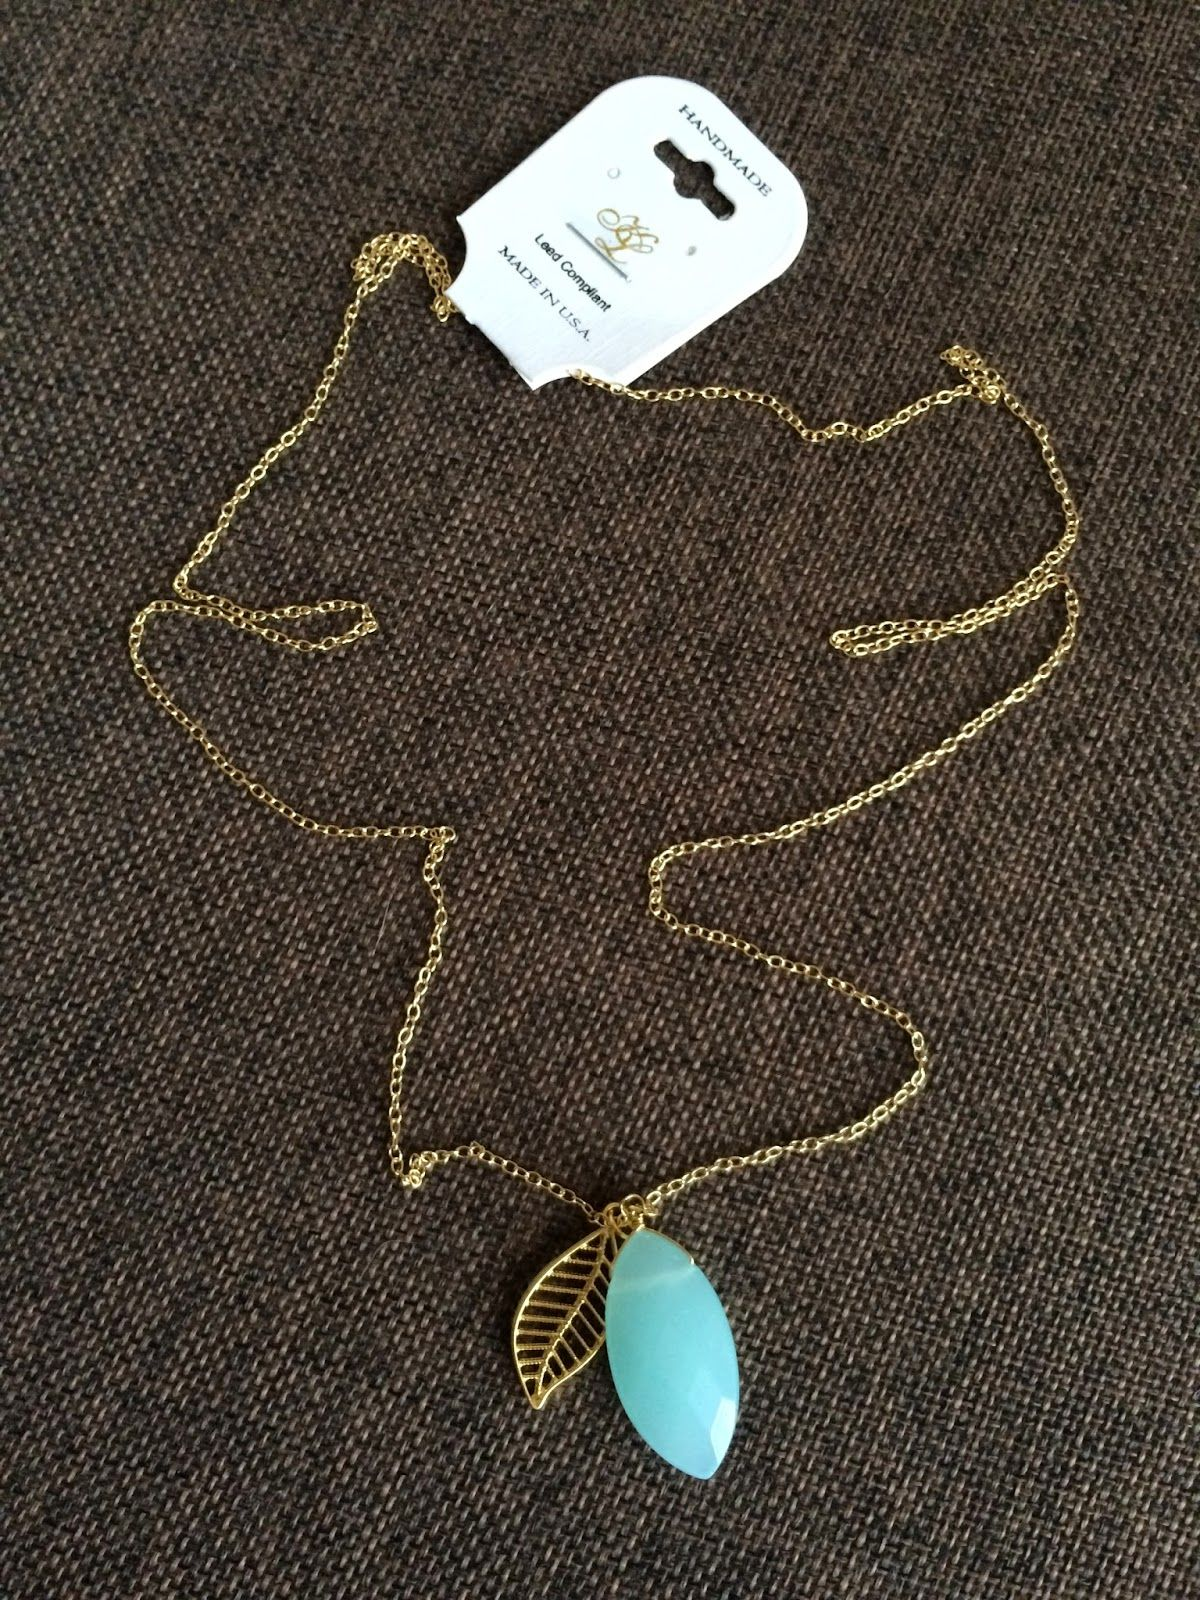 Bay to baubles gonzo stone and leaf necklace my style pinterest